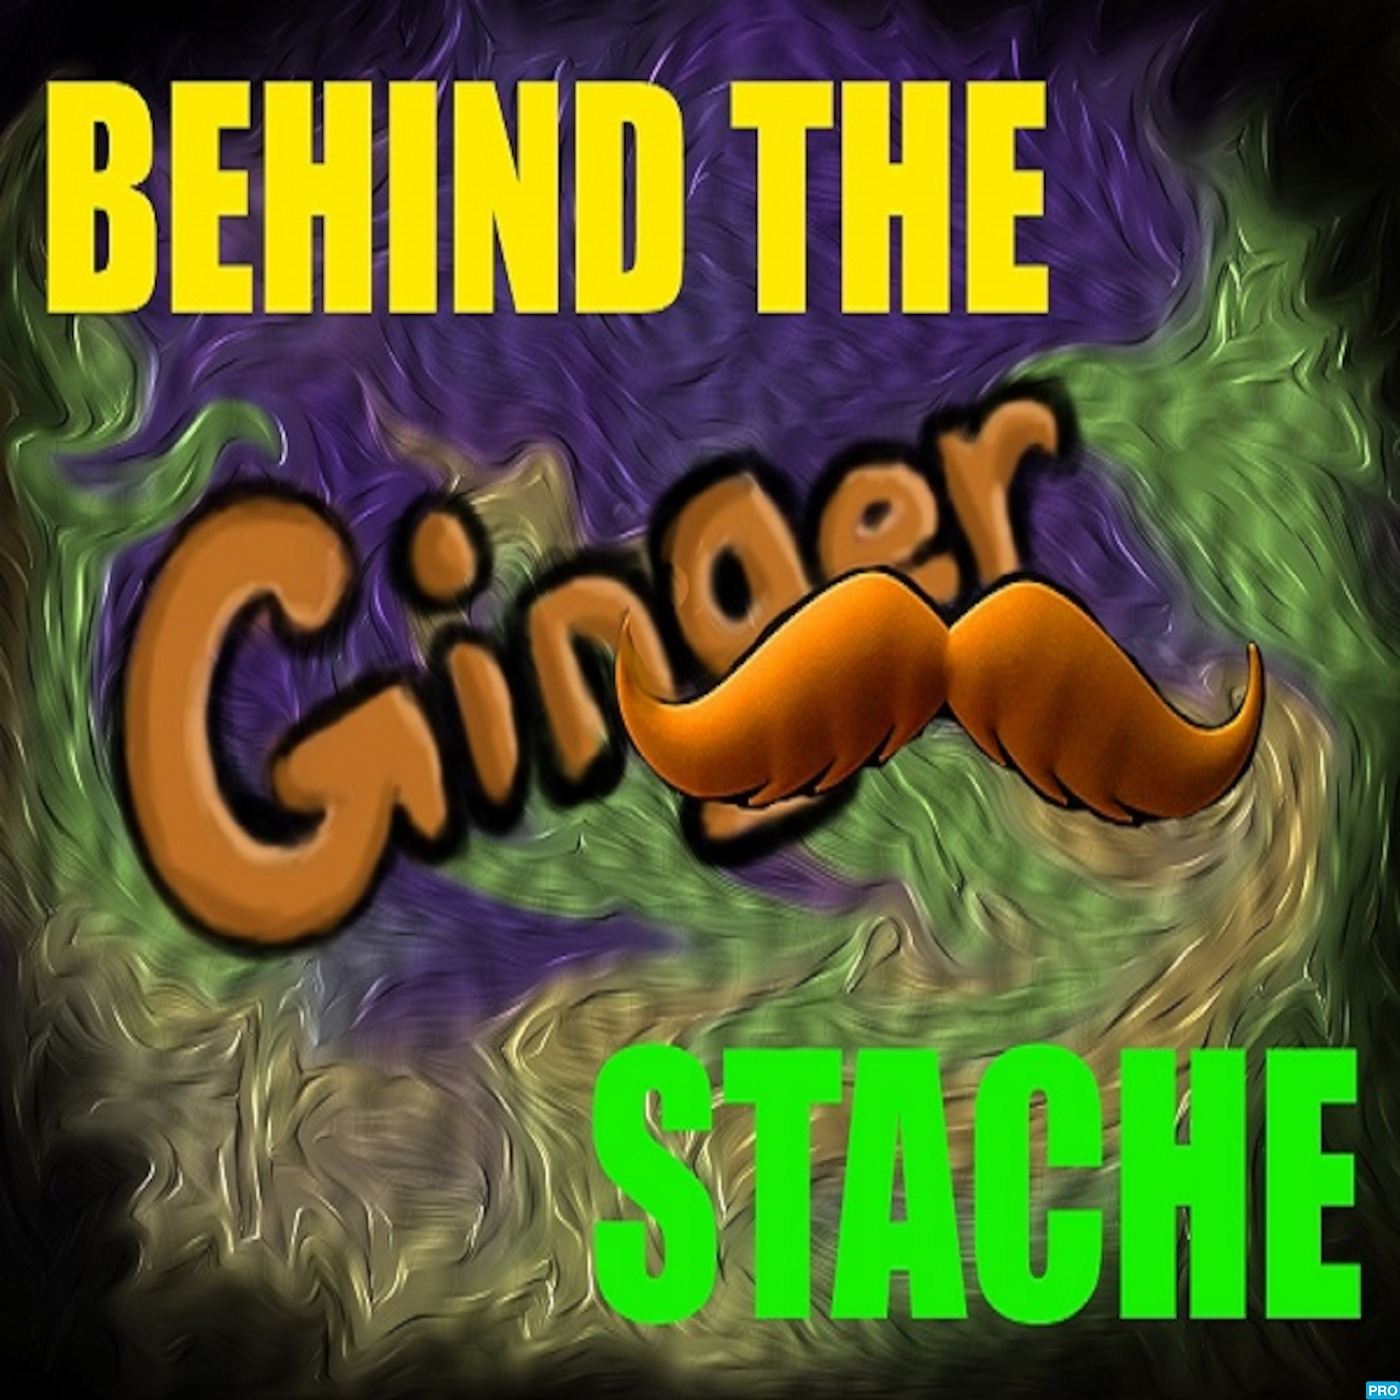 Behind The Ginger Stache